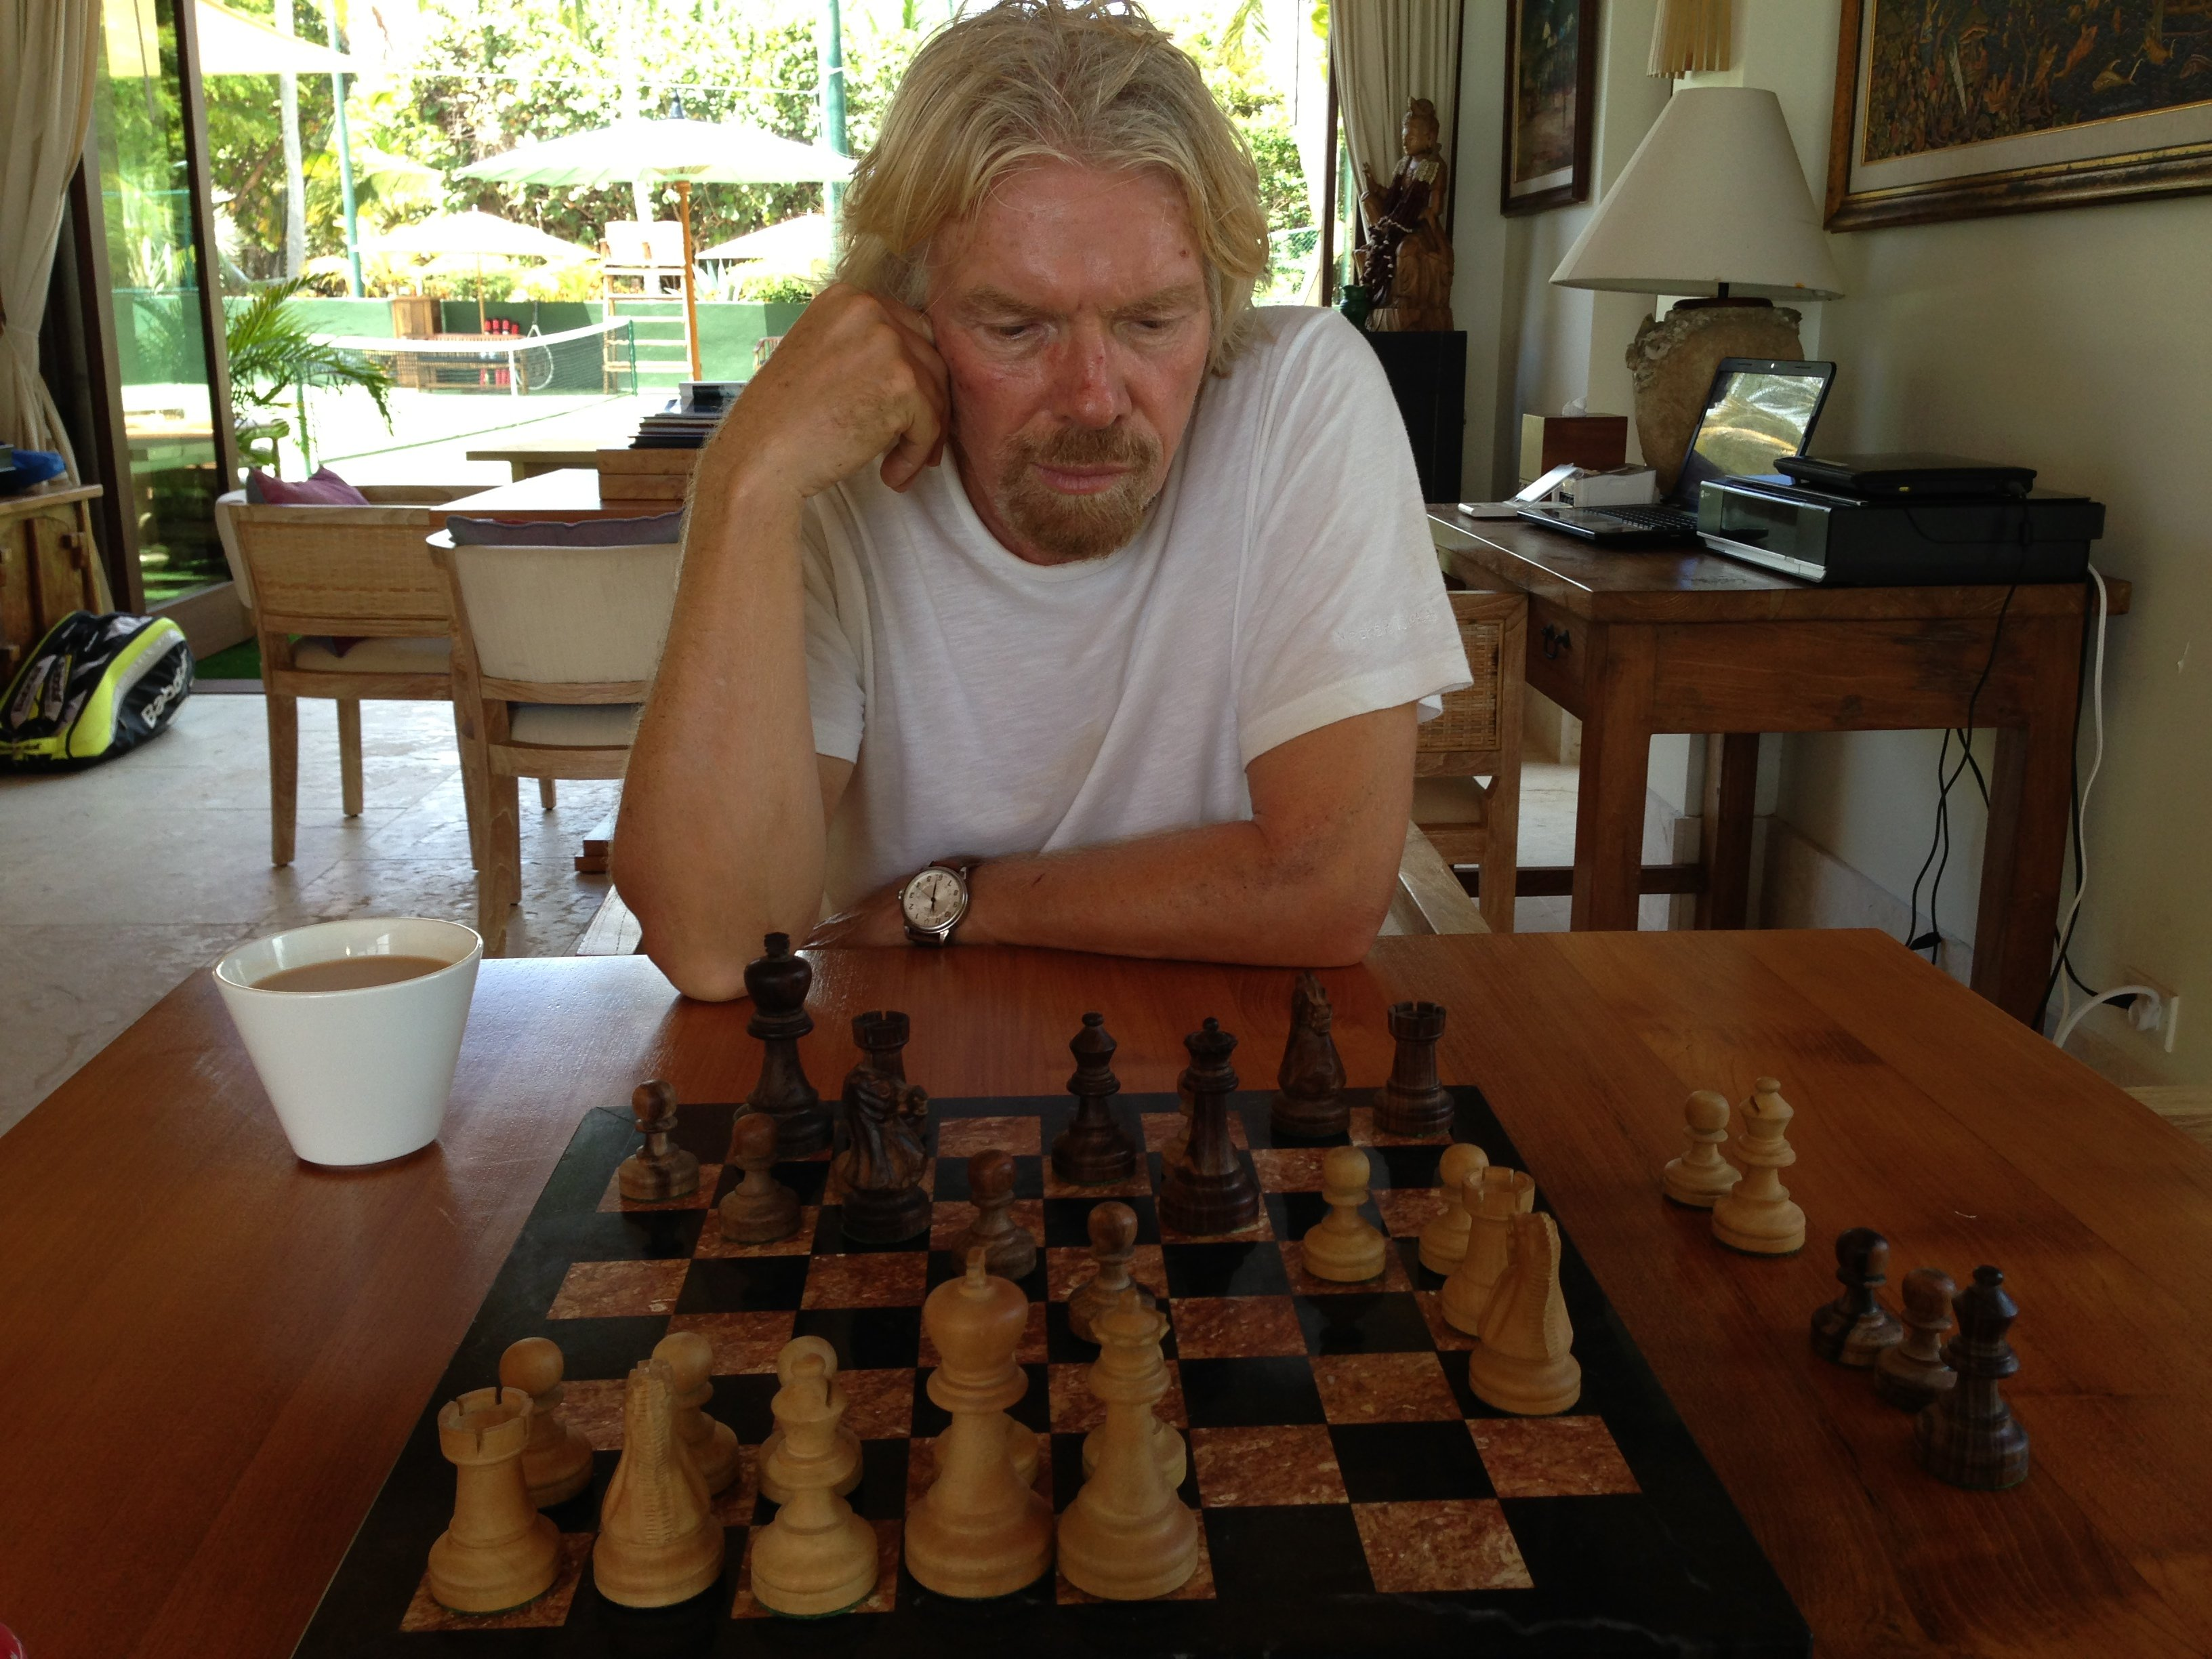 The Complete Guide To Understanding Chess Diagram 3 Checkmate 4 Fool S Mate Stalemate Richard Branson